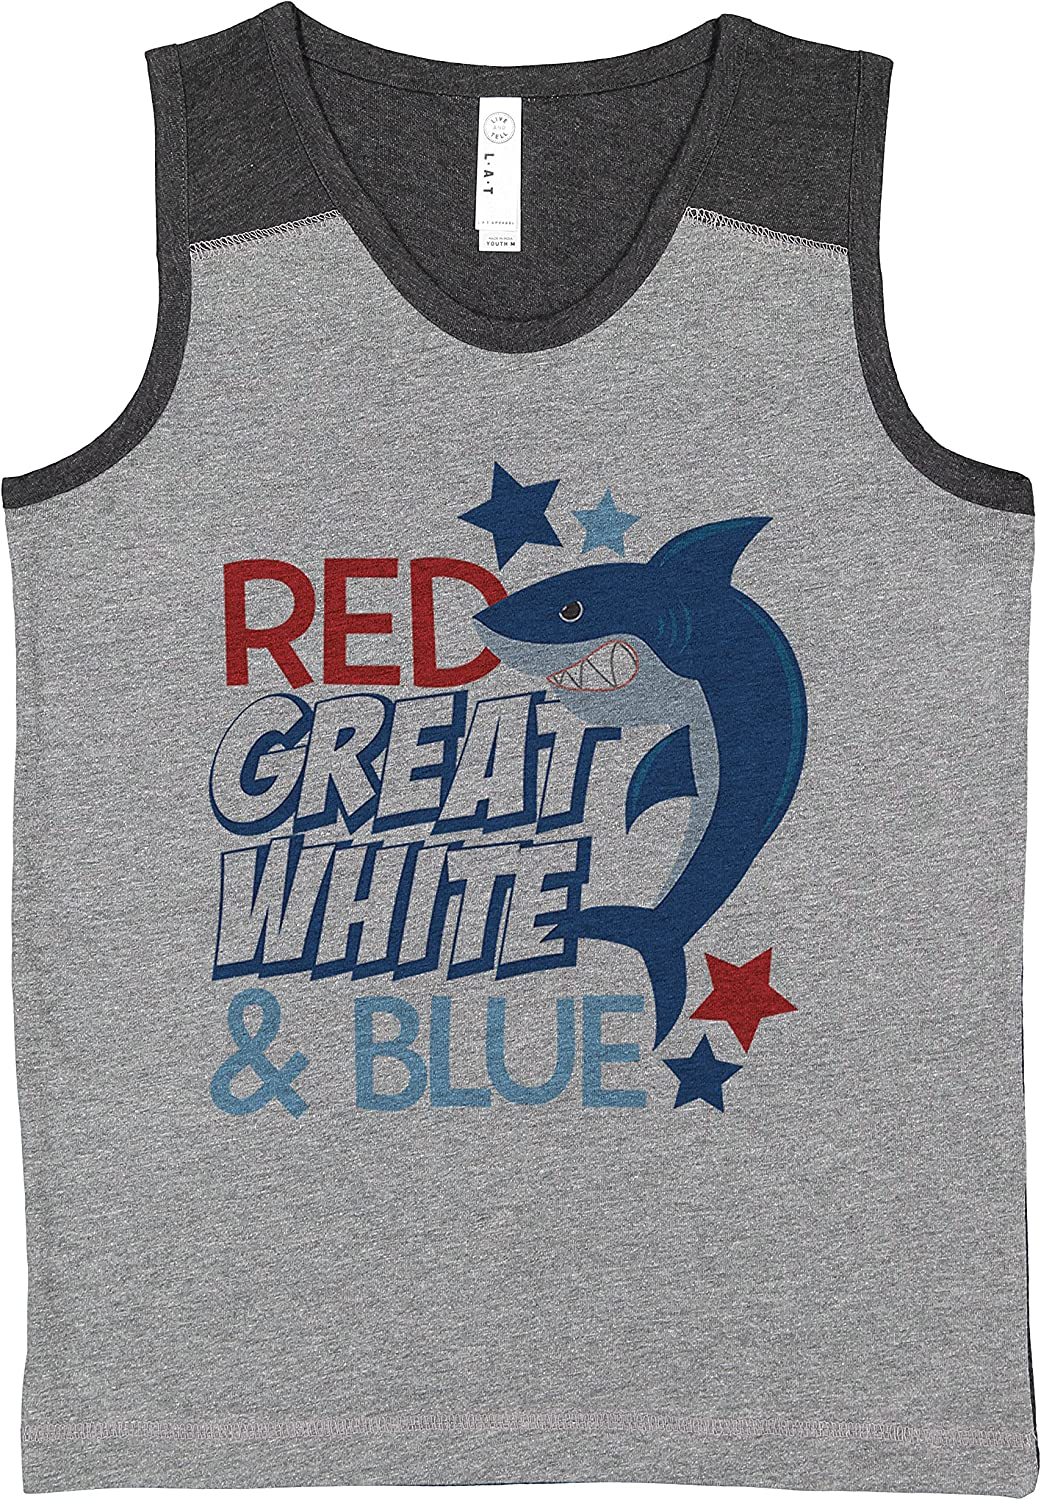 7 ate 9 Apparel Kids 4th of July Red Great White Shark Grey Contrast Tank Top